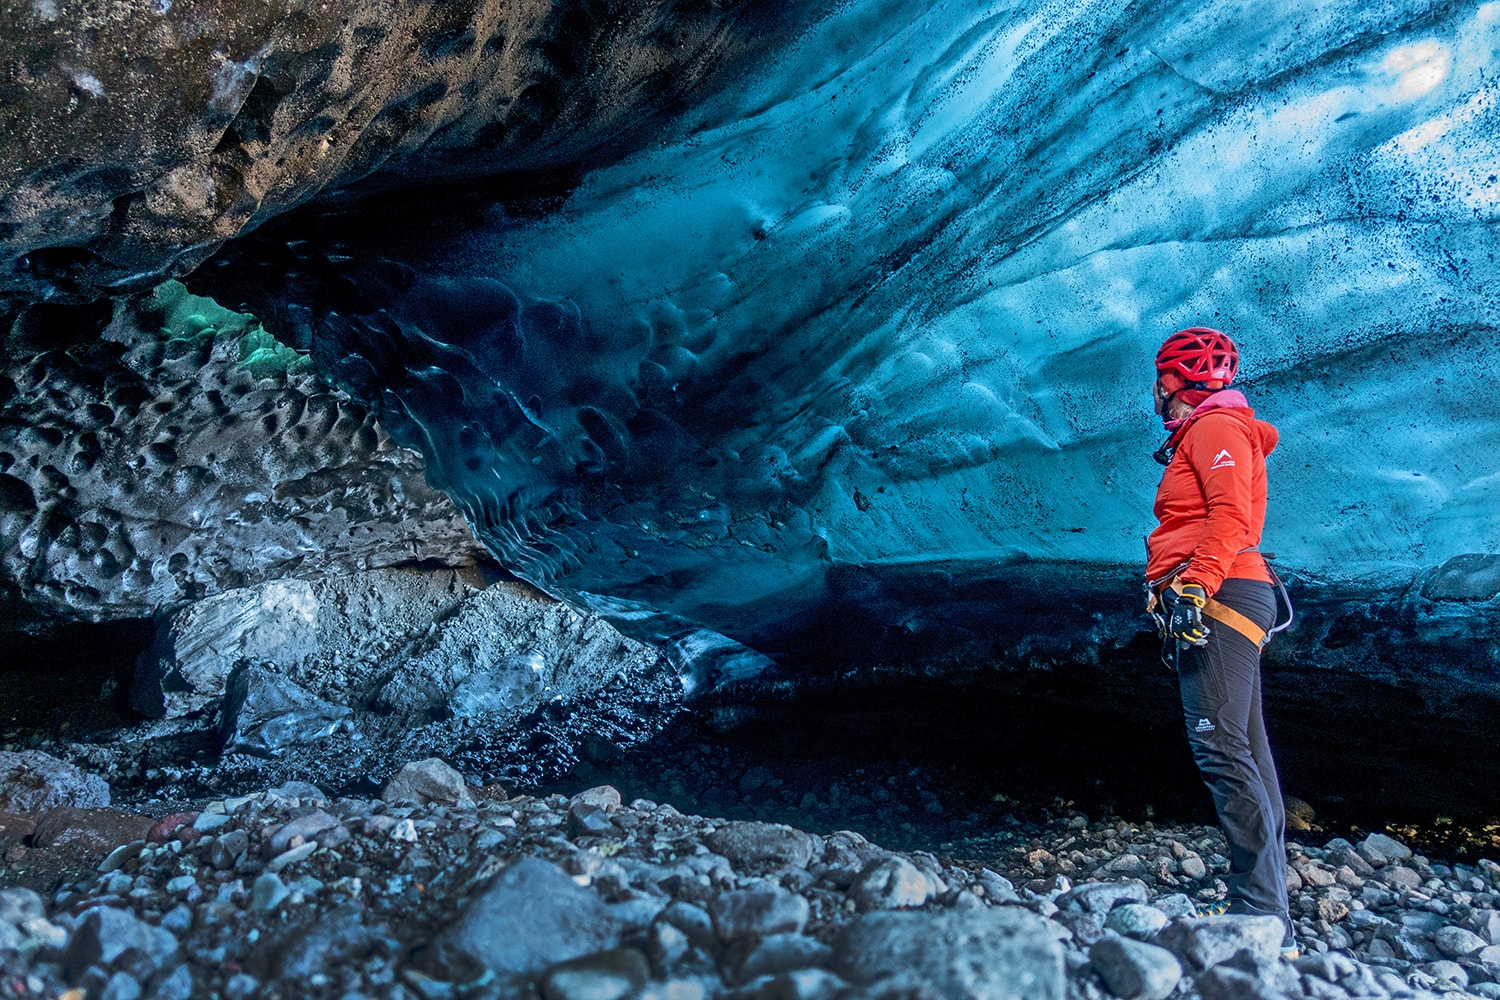 Blue ice inside the cave